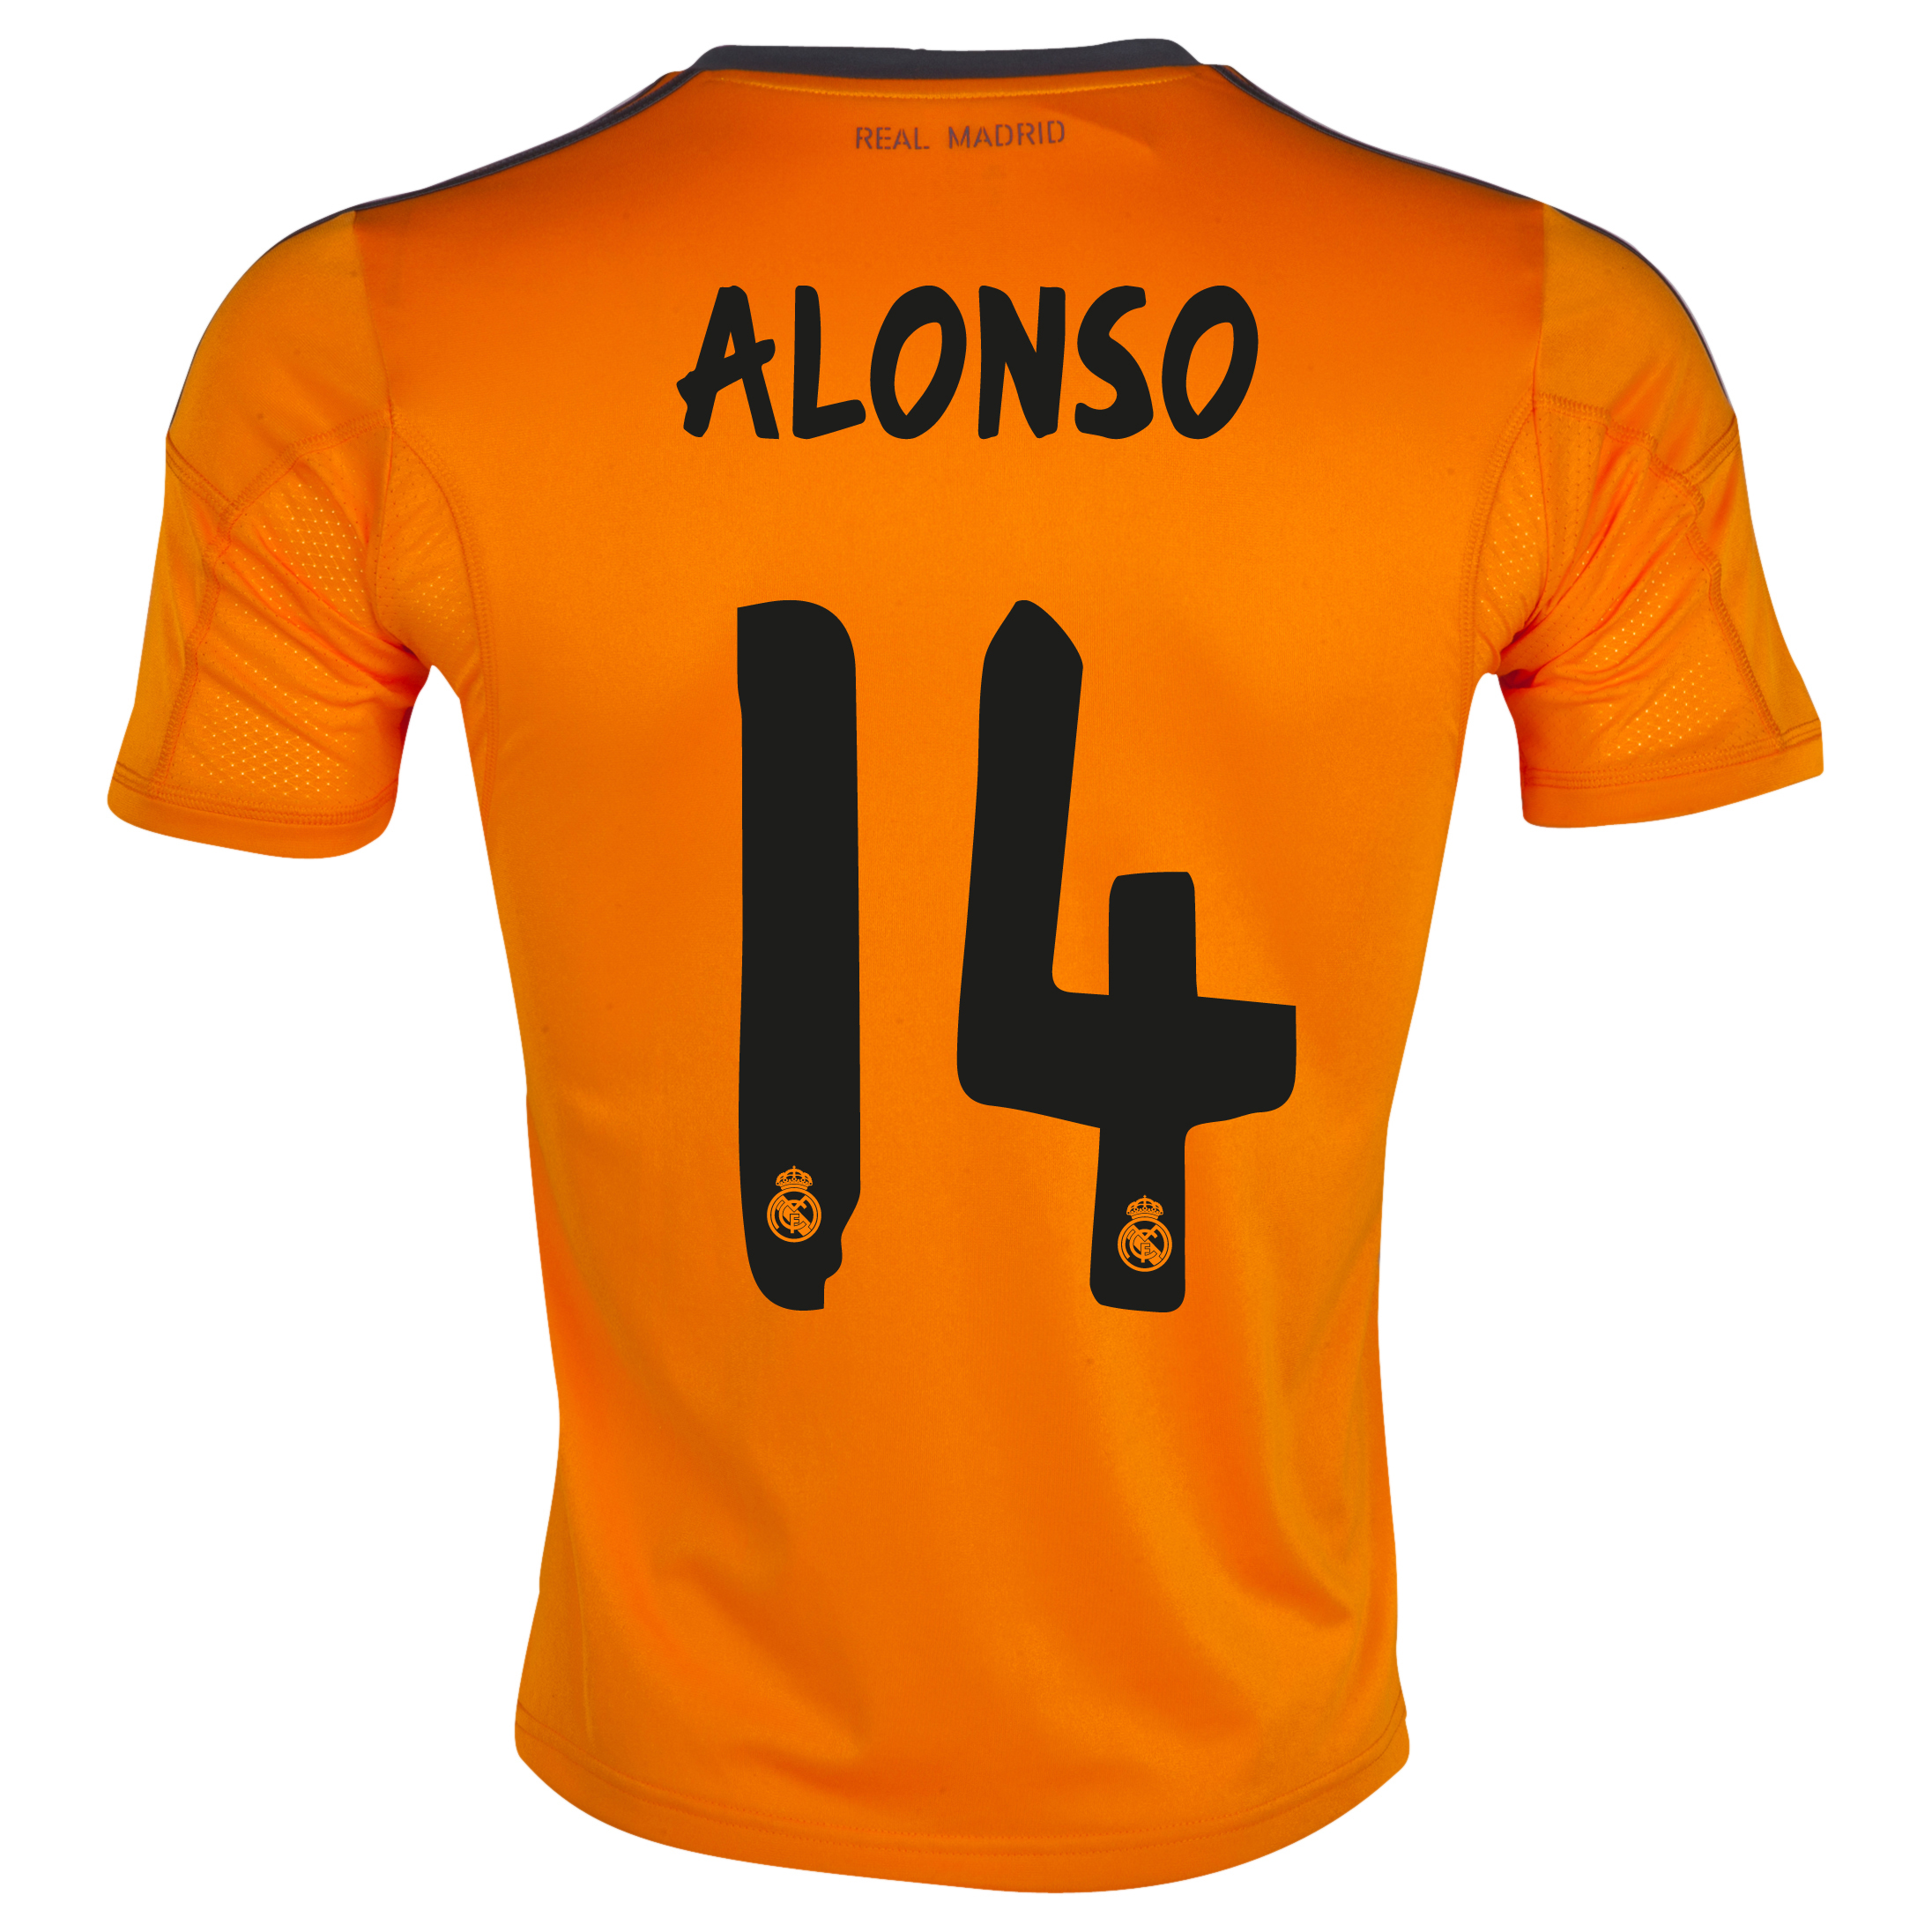 Real Madrid Third Shirt 2013/14 with Alonso 14 printing